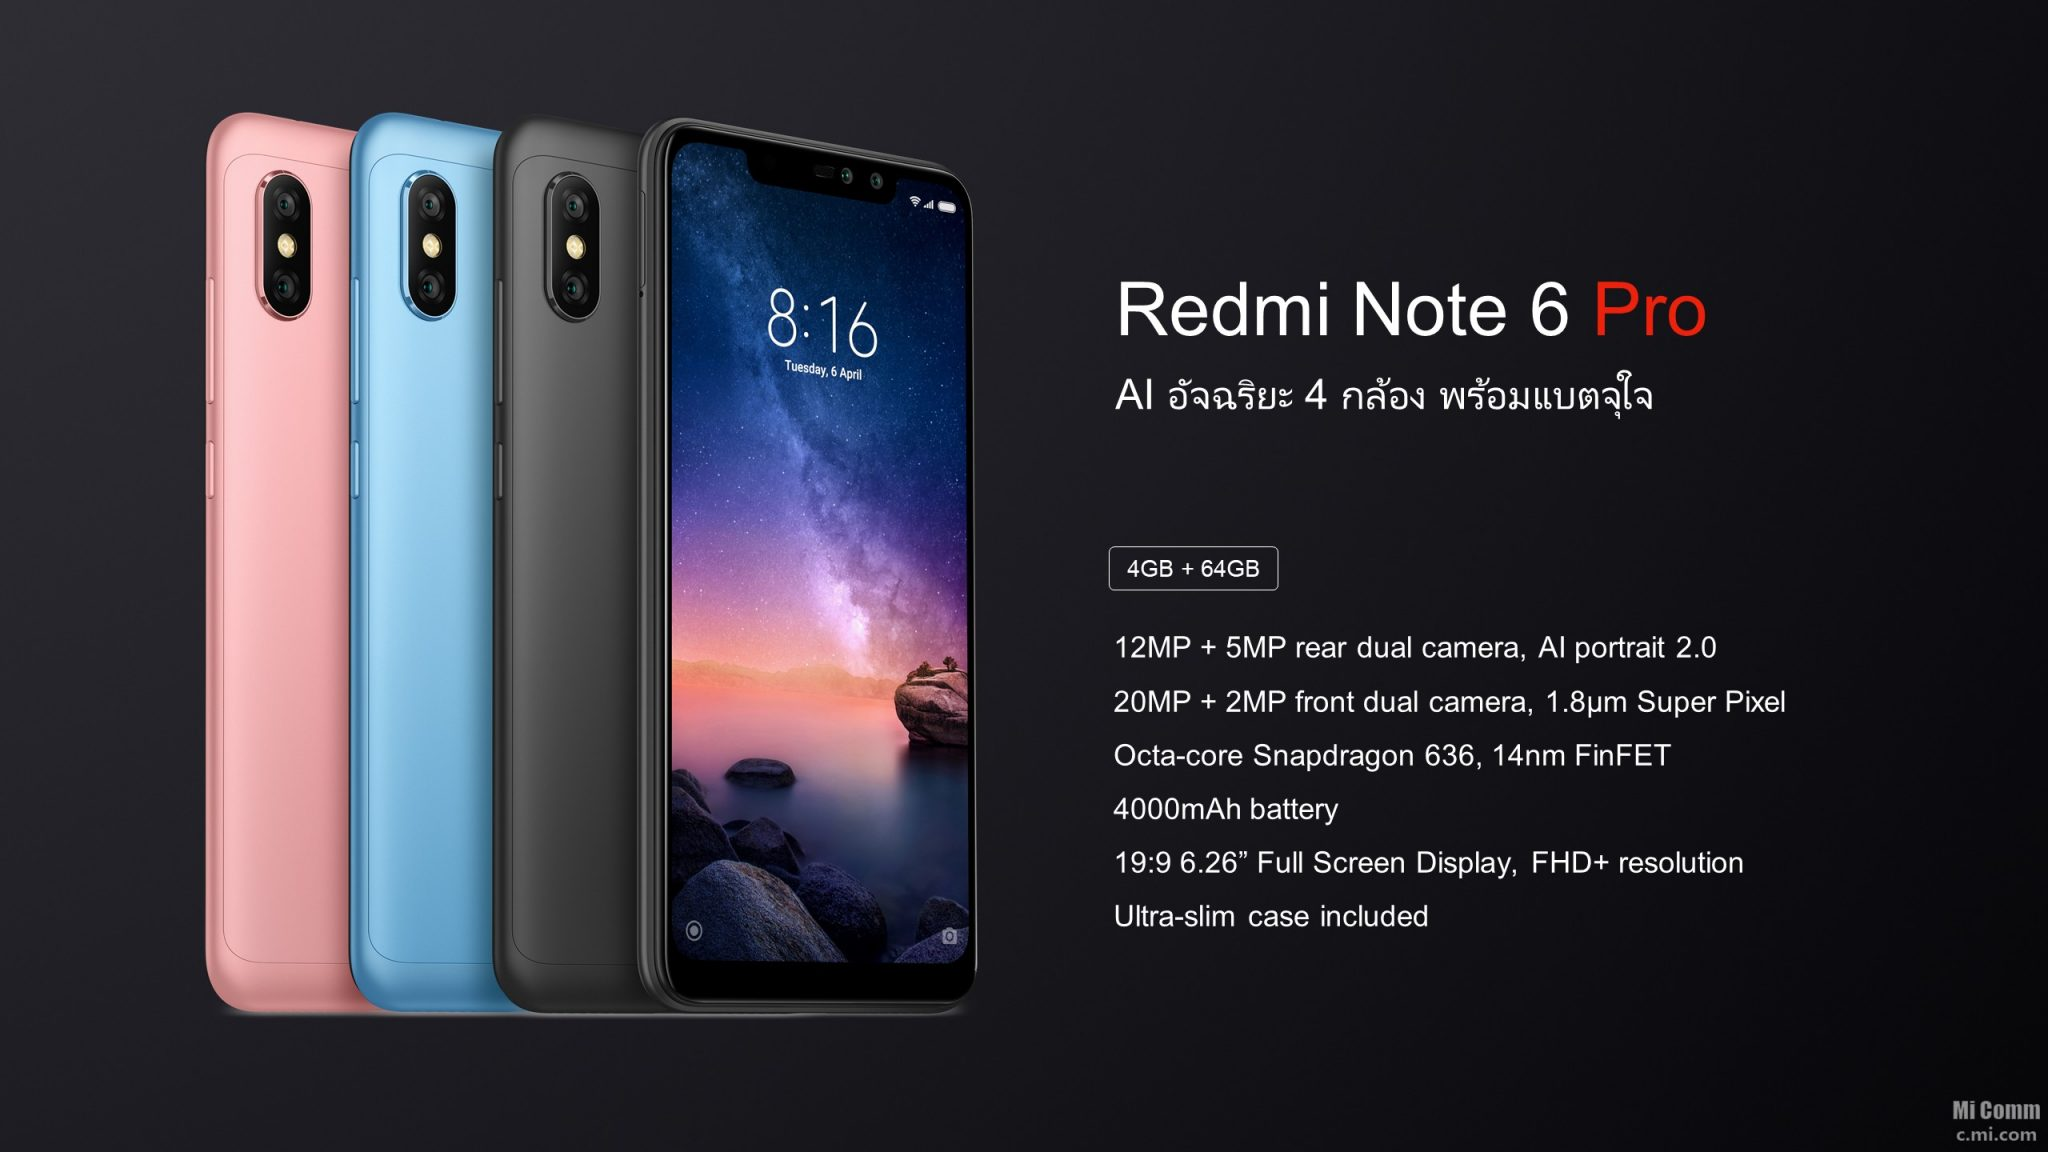 Xiaomi Redmi Note 6 Pro quietly announced in Thailand 10